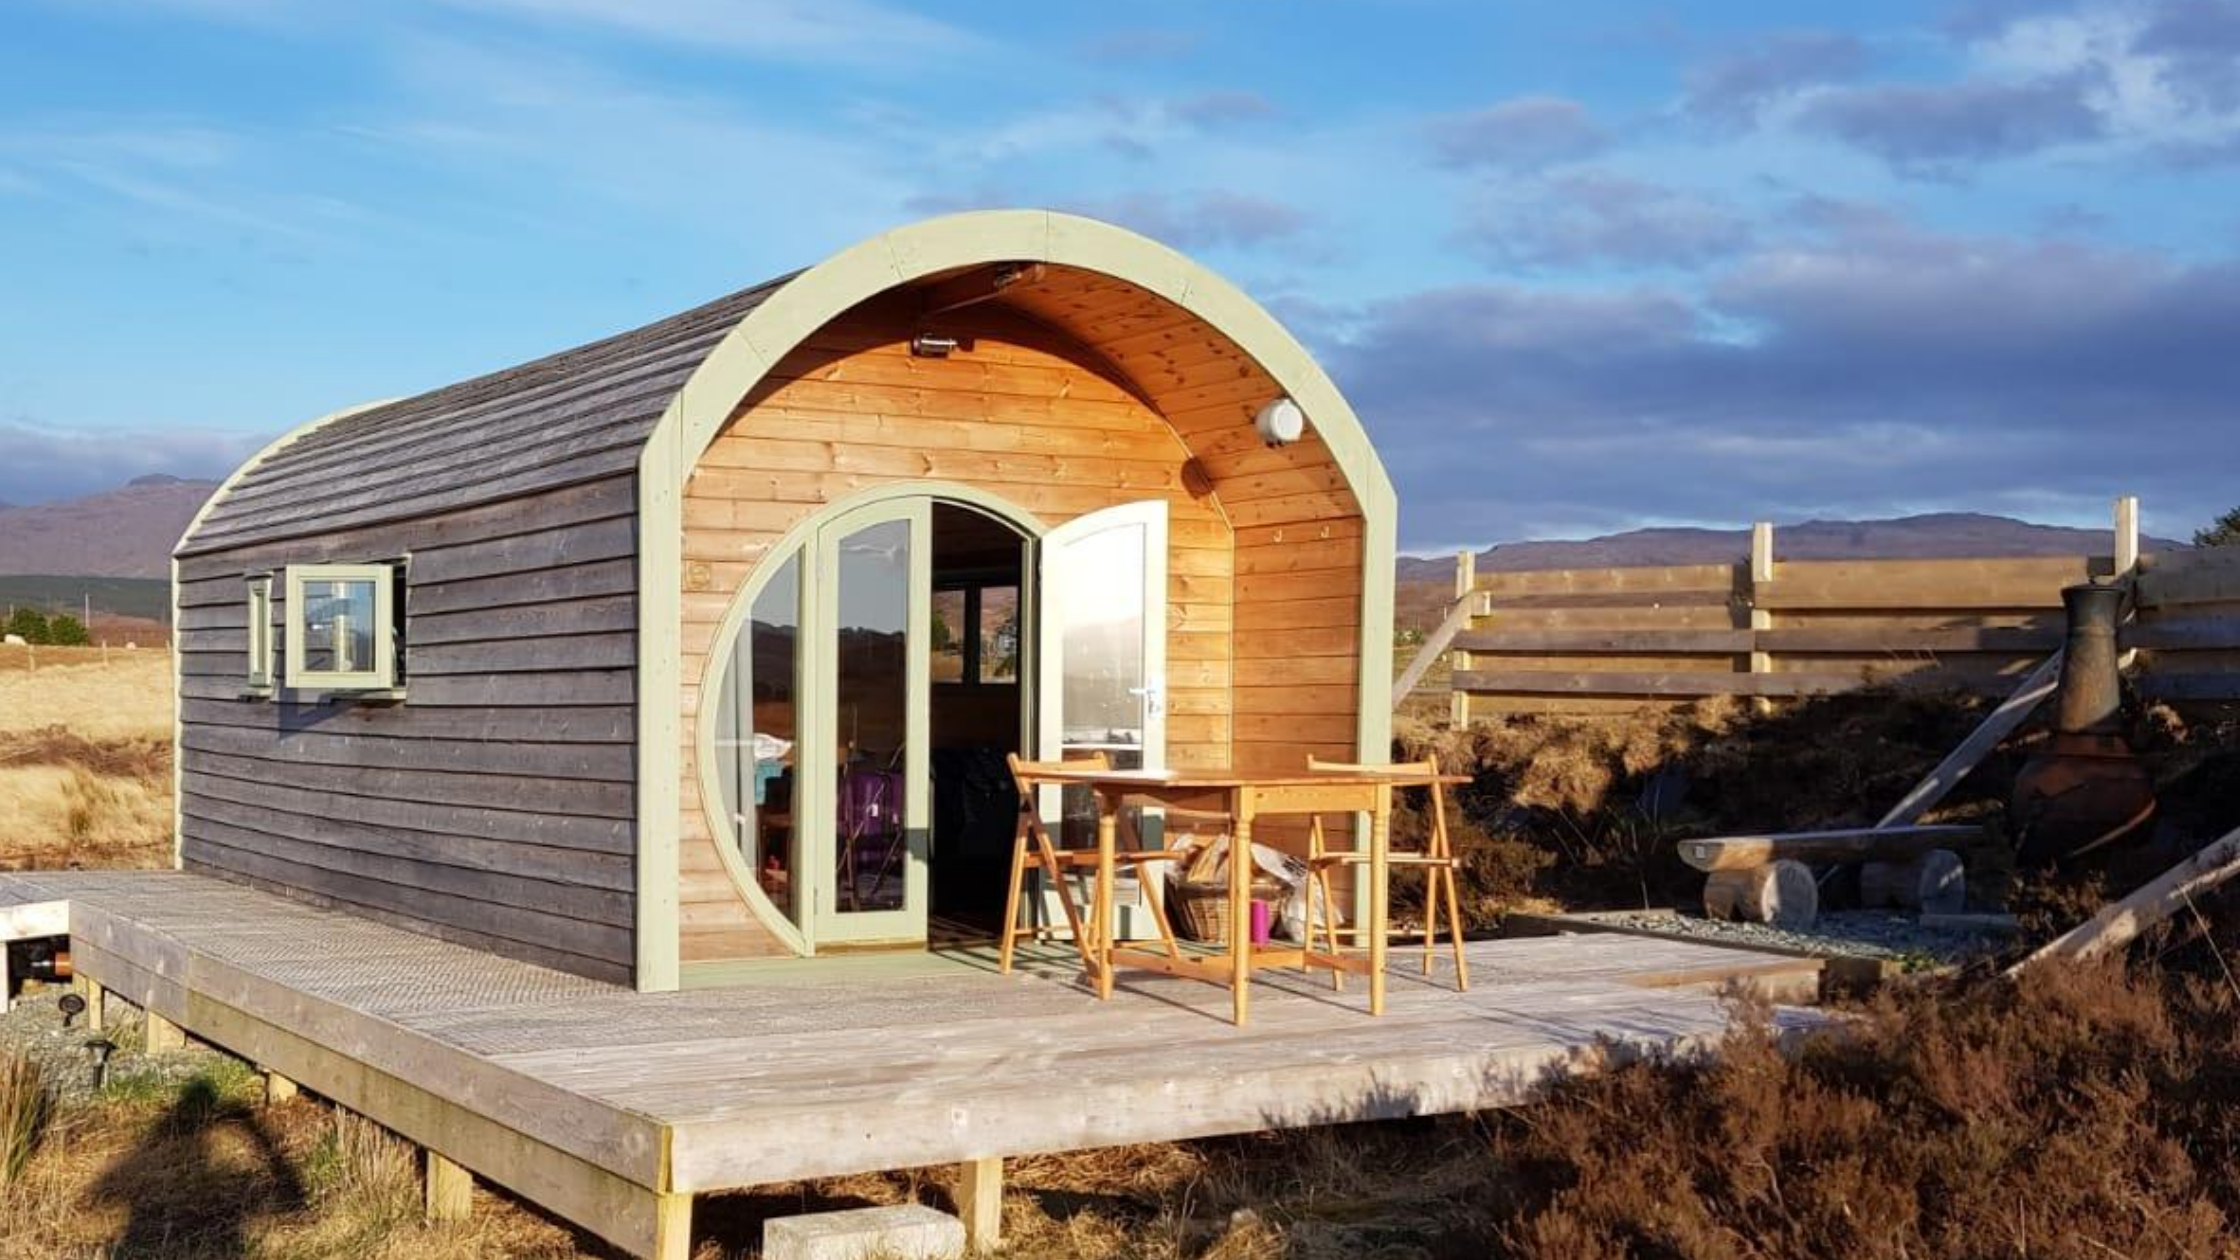 Unusual & Romantic Countryside Retreats For Your October Staycation